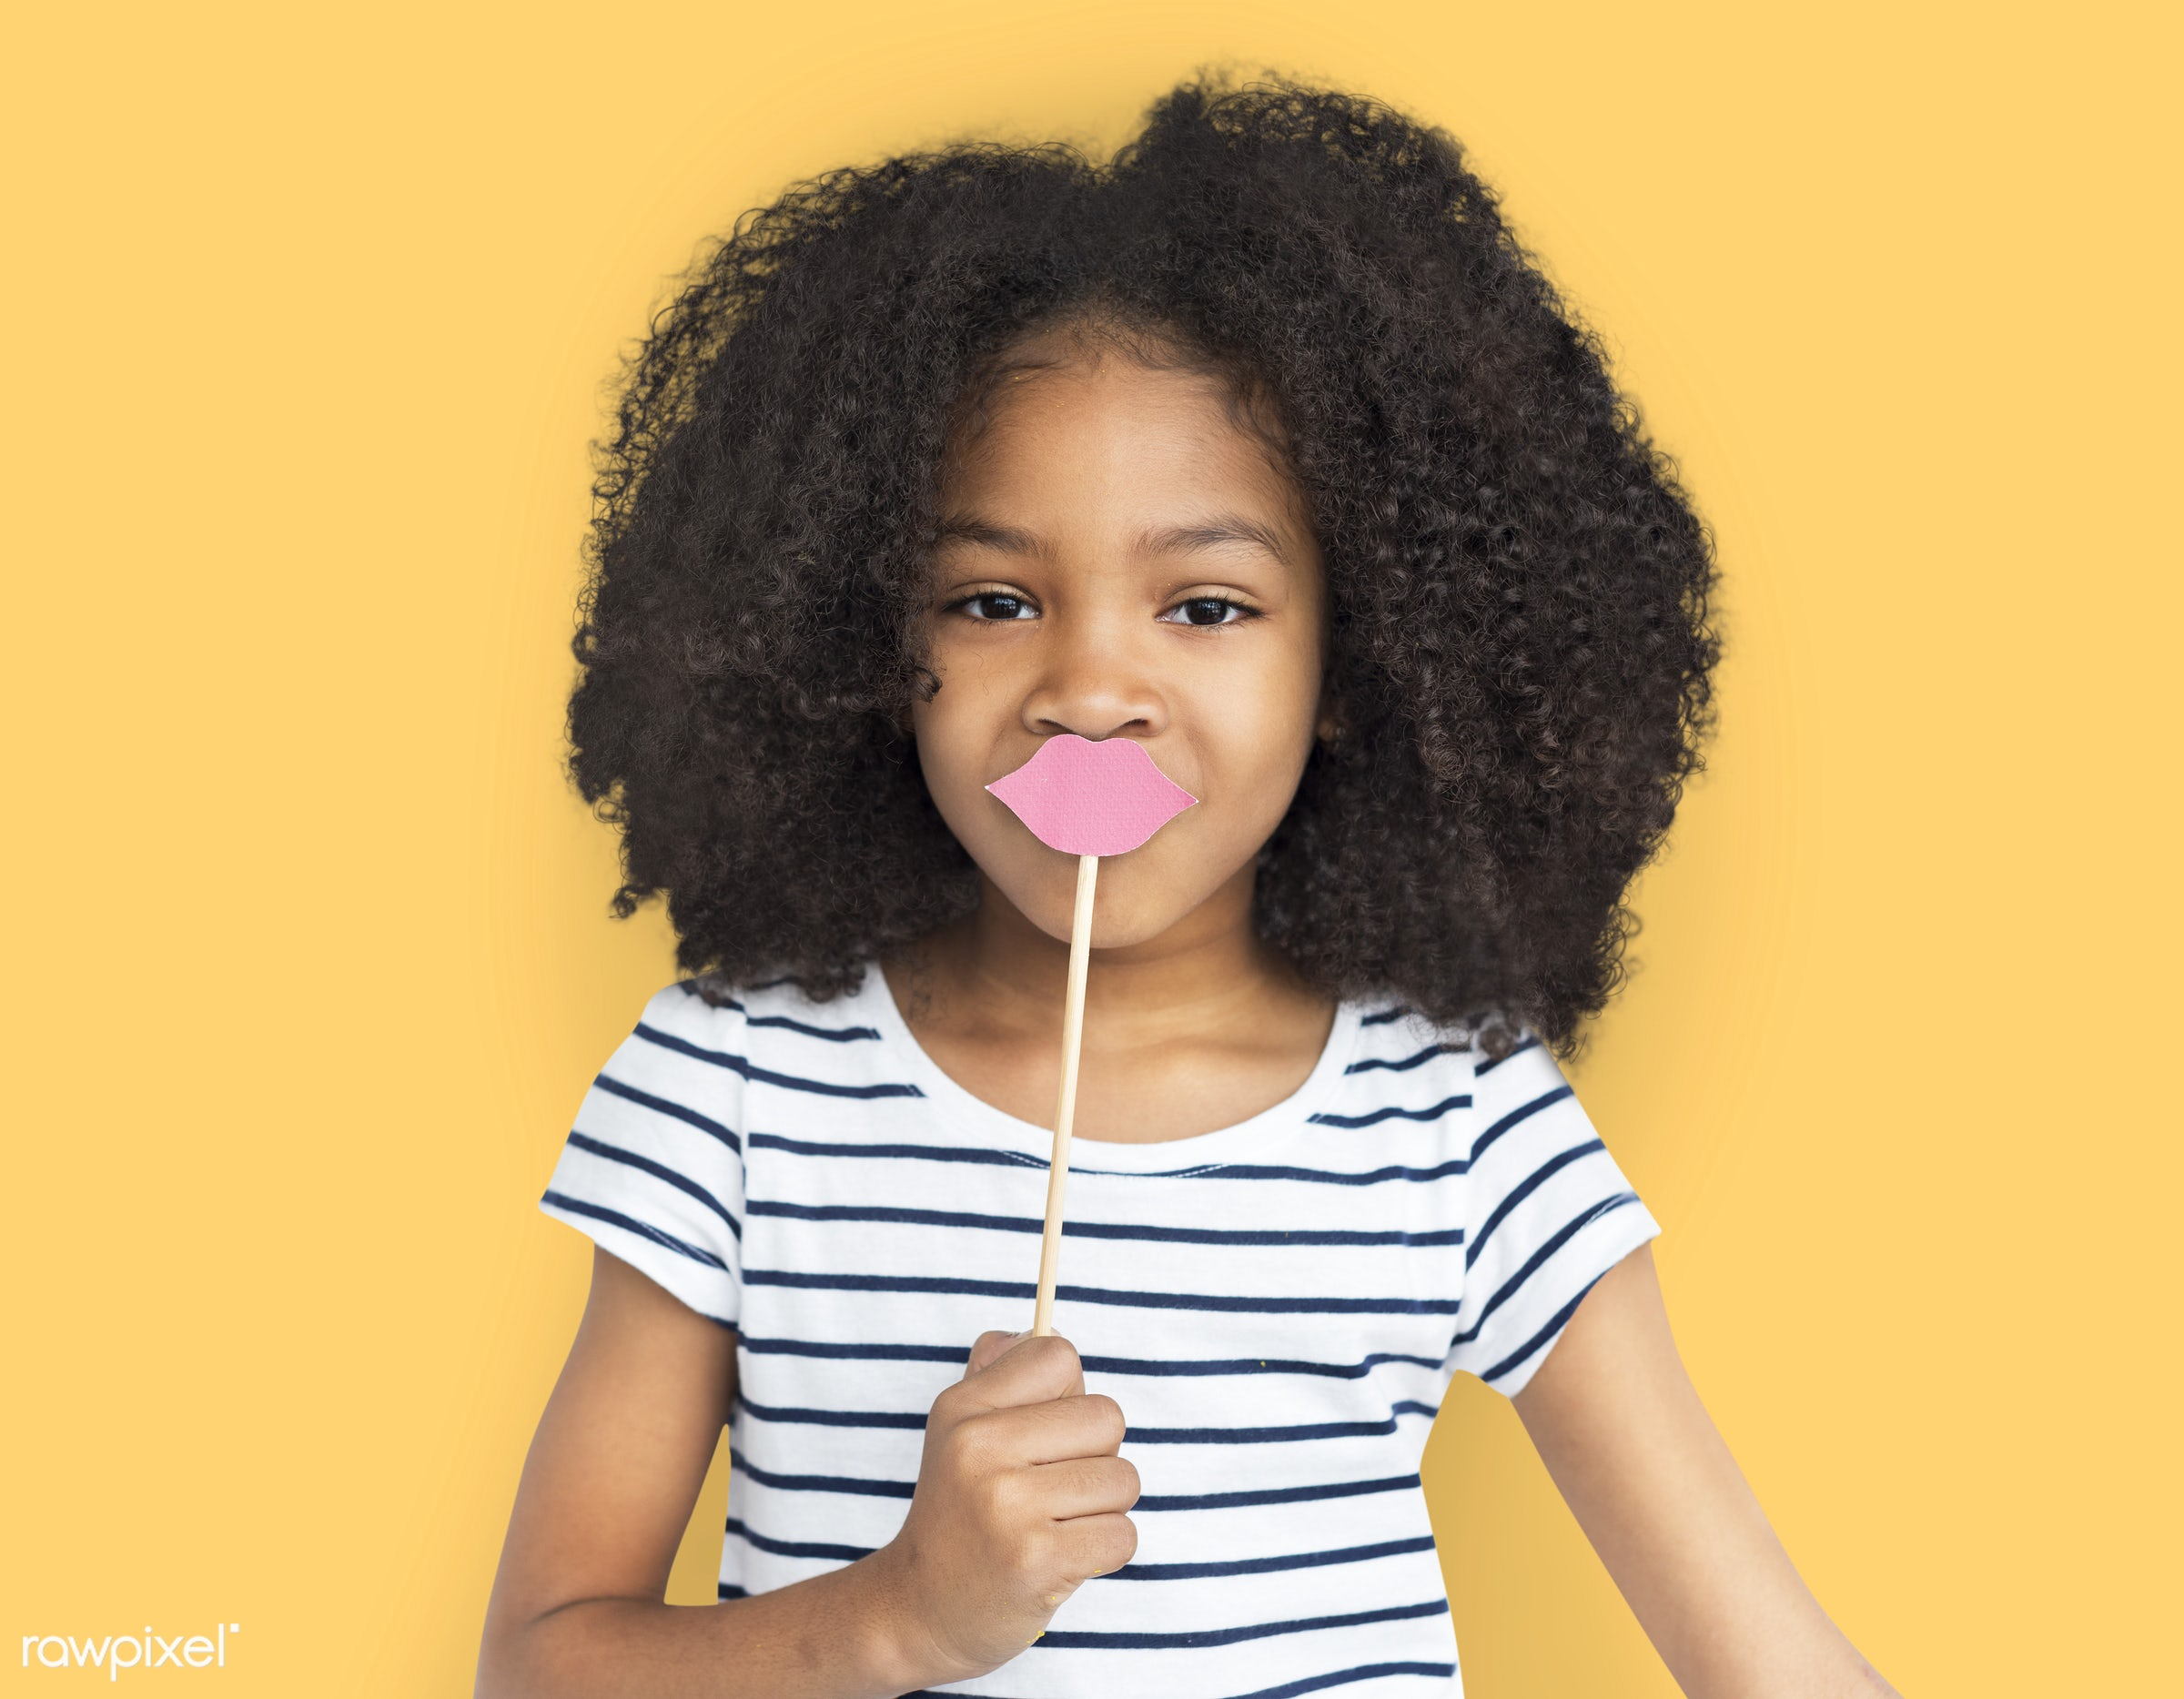 expression, studio, person, little, cute, people, child, girl, happy, casual, cheerful, fake lips, isolated, little girl,...